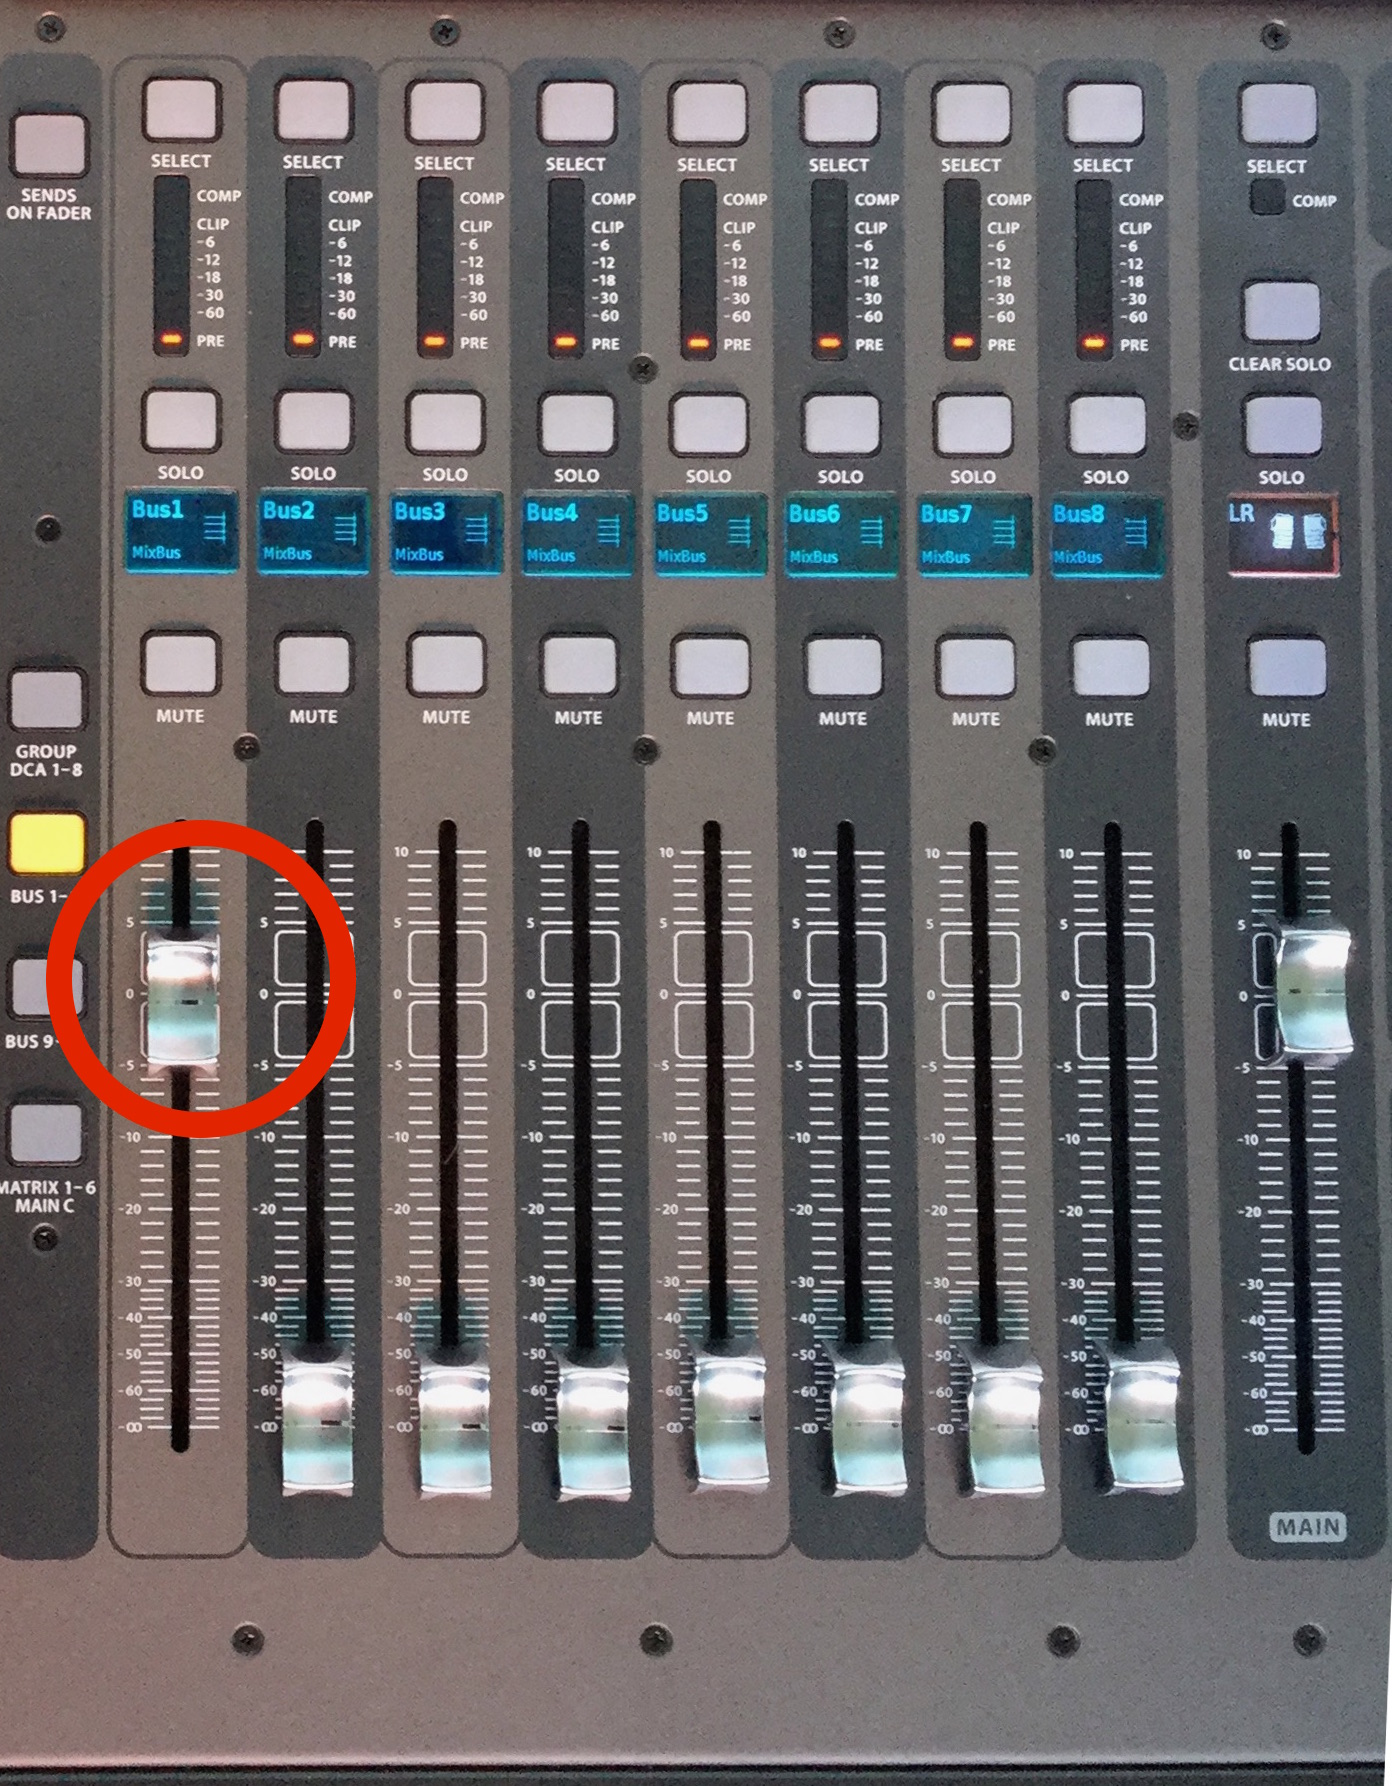 Behringer X32: How to route an input to a bus | Sweetwater